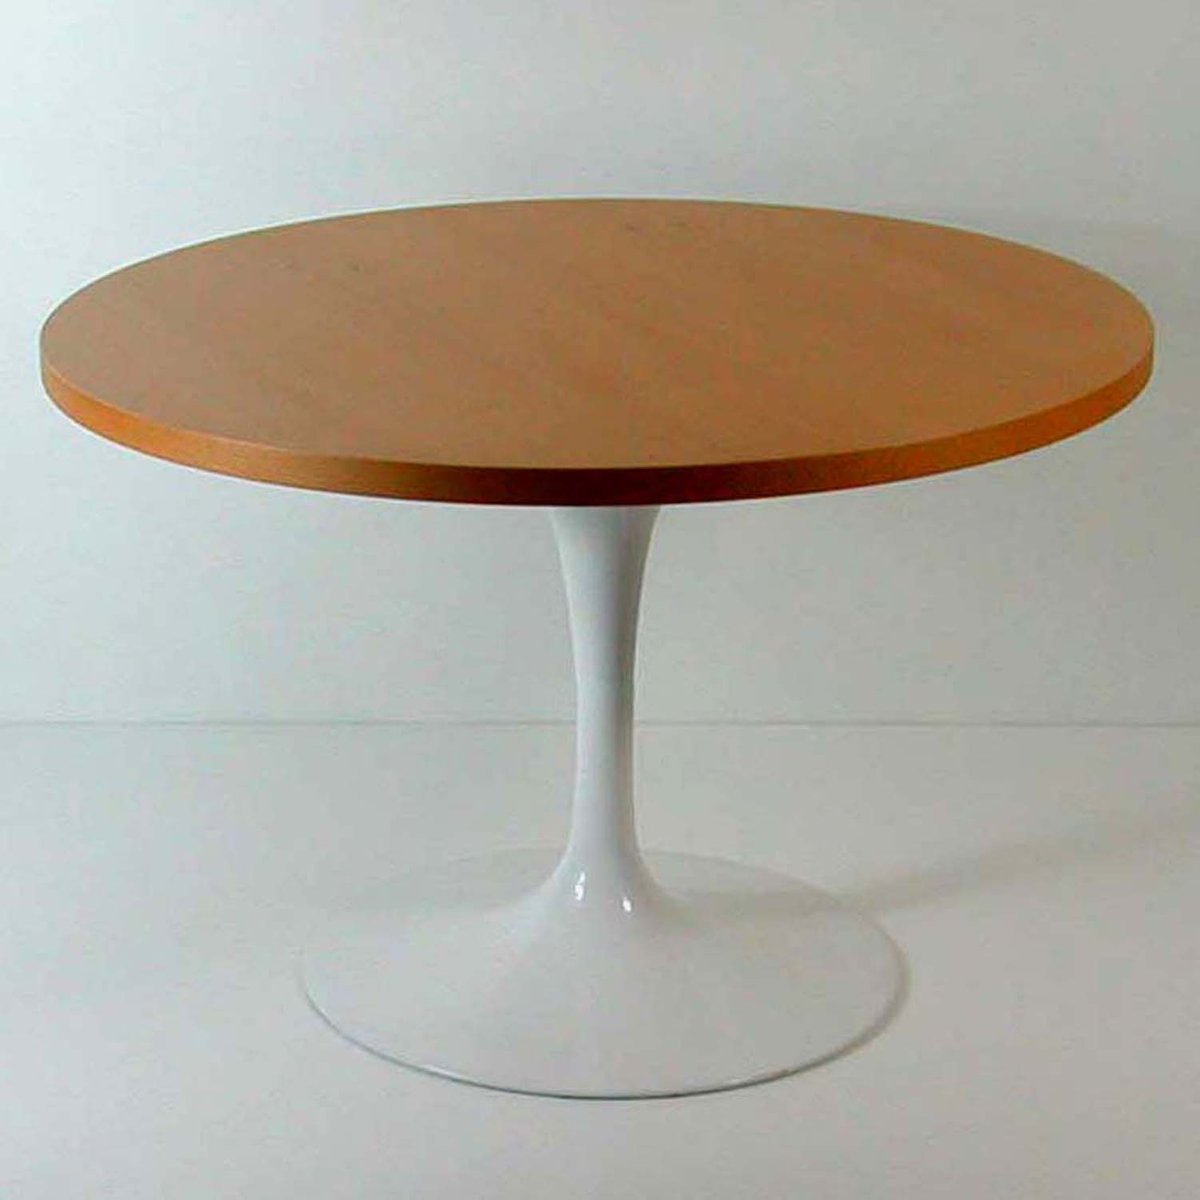 Tulip Base Lazy Susan Coffee Table By Eero Saarinen For Knoll For Sale At Pamono